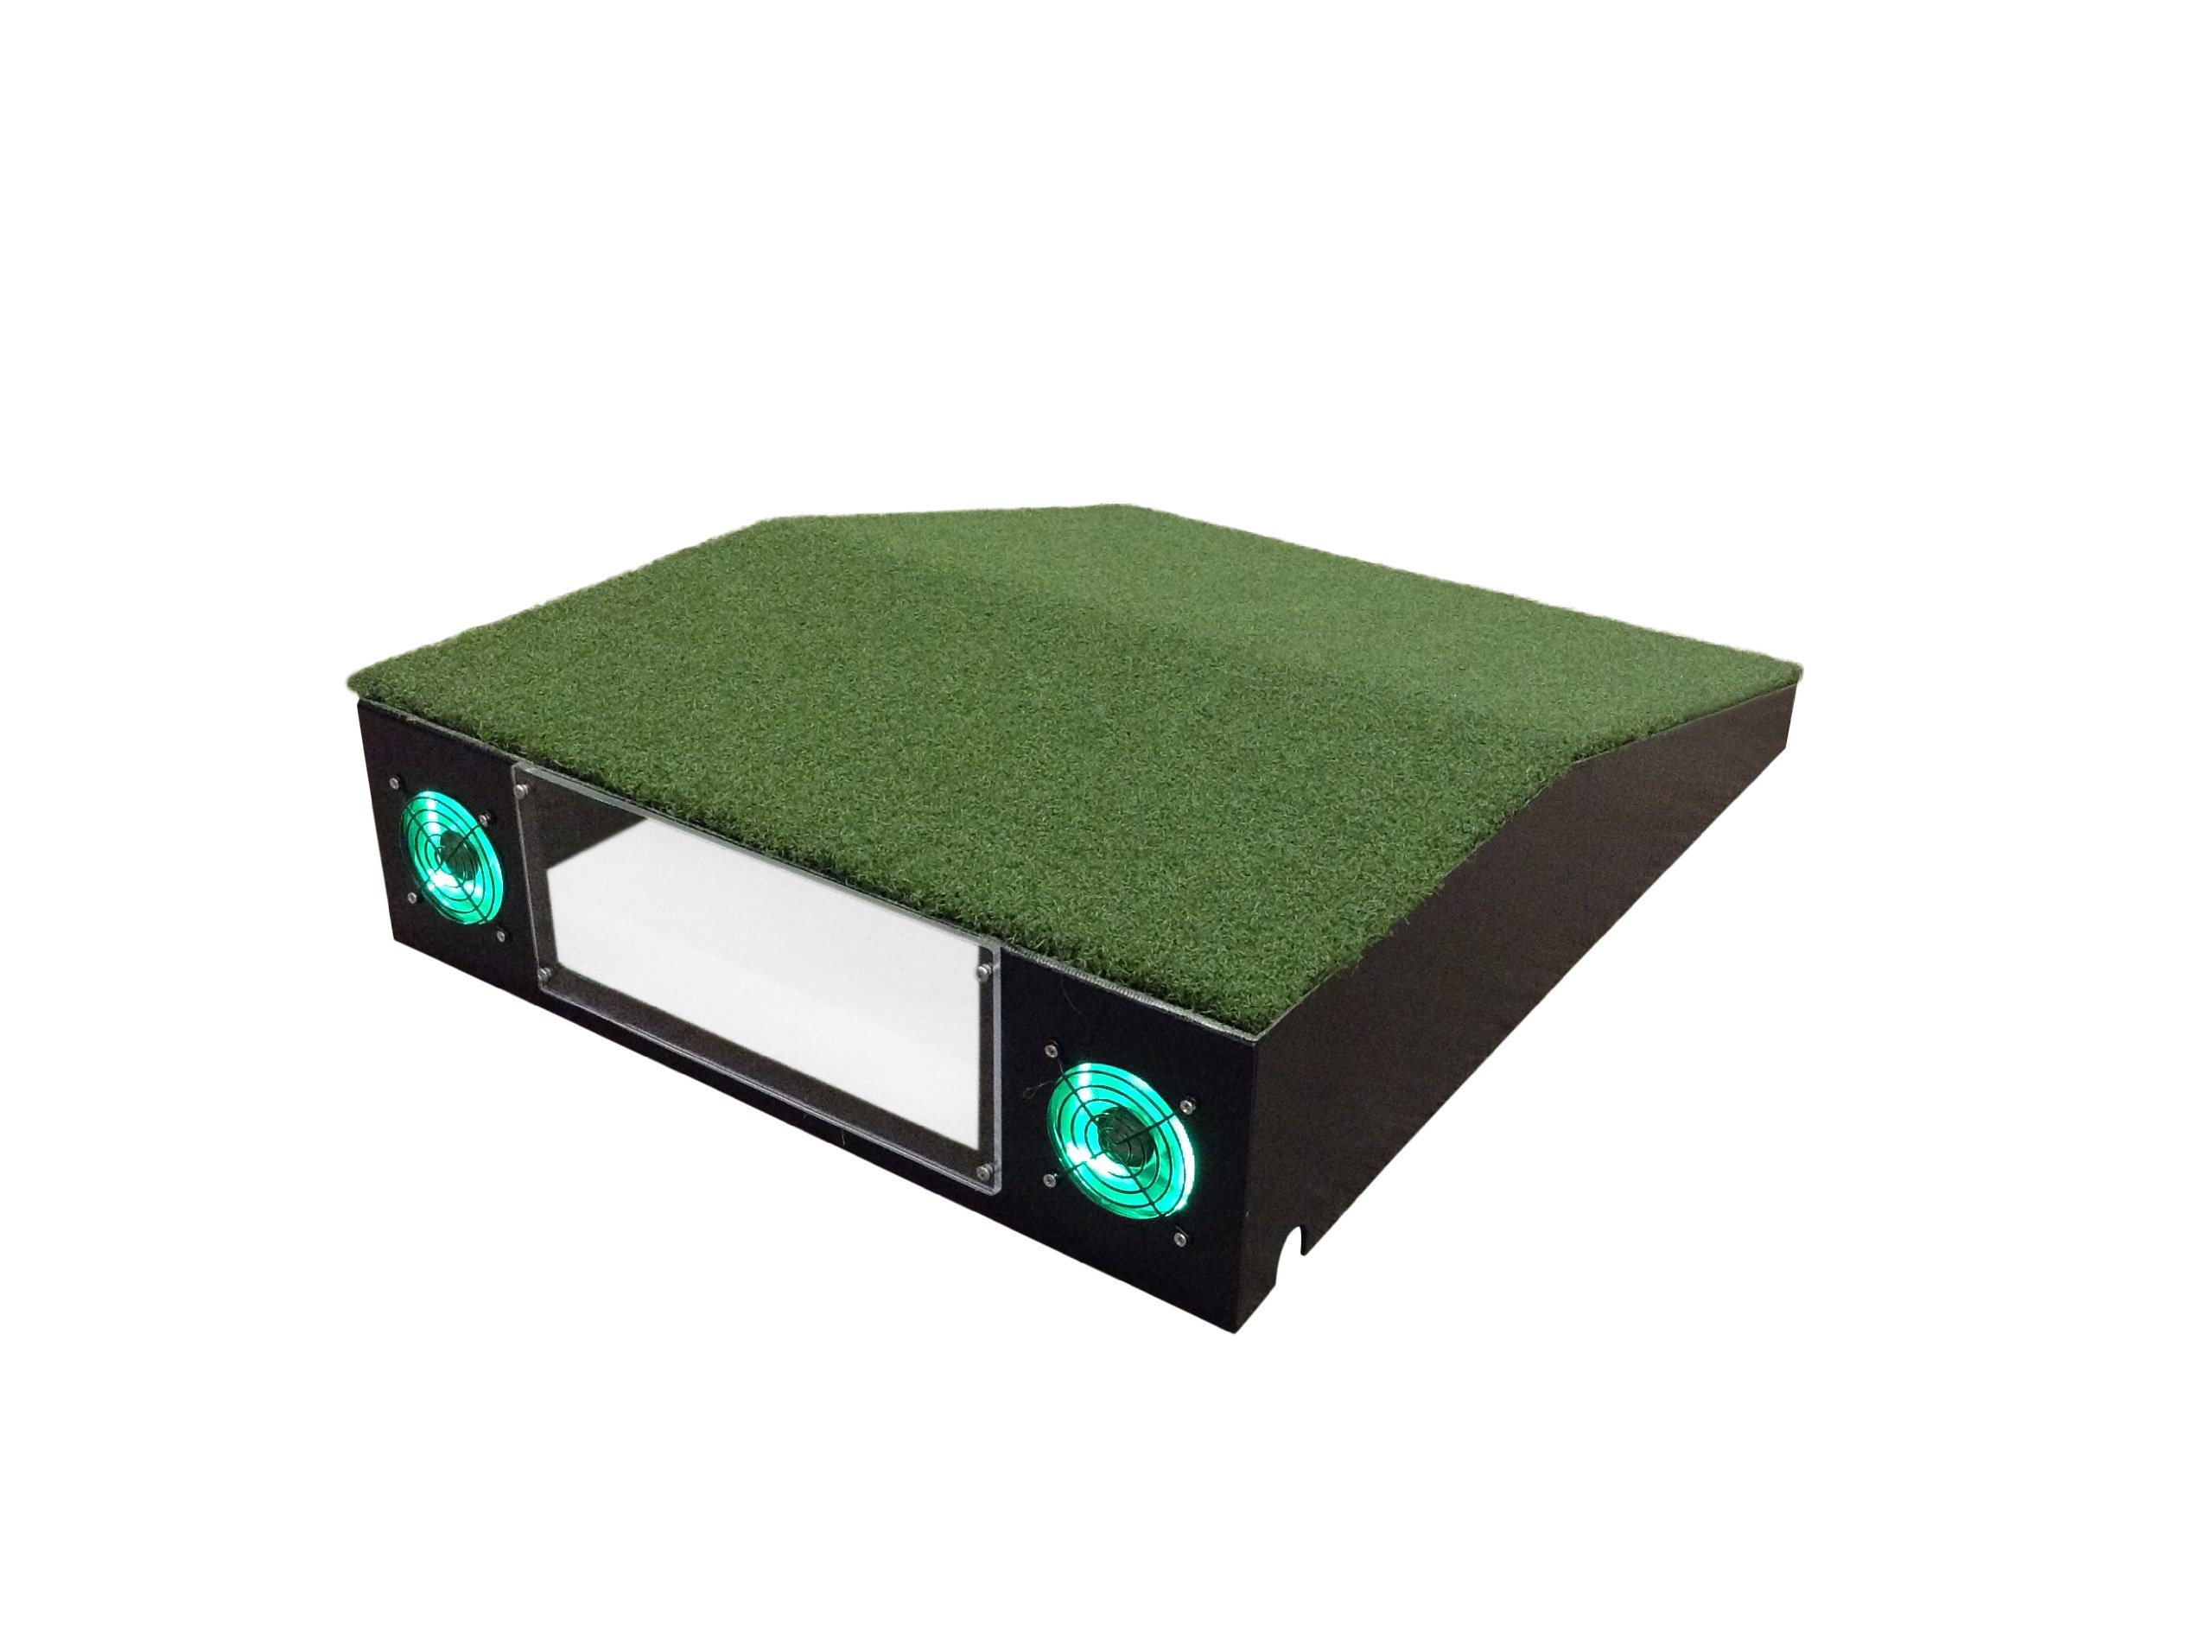 Projector & Projector Box Package